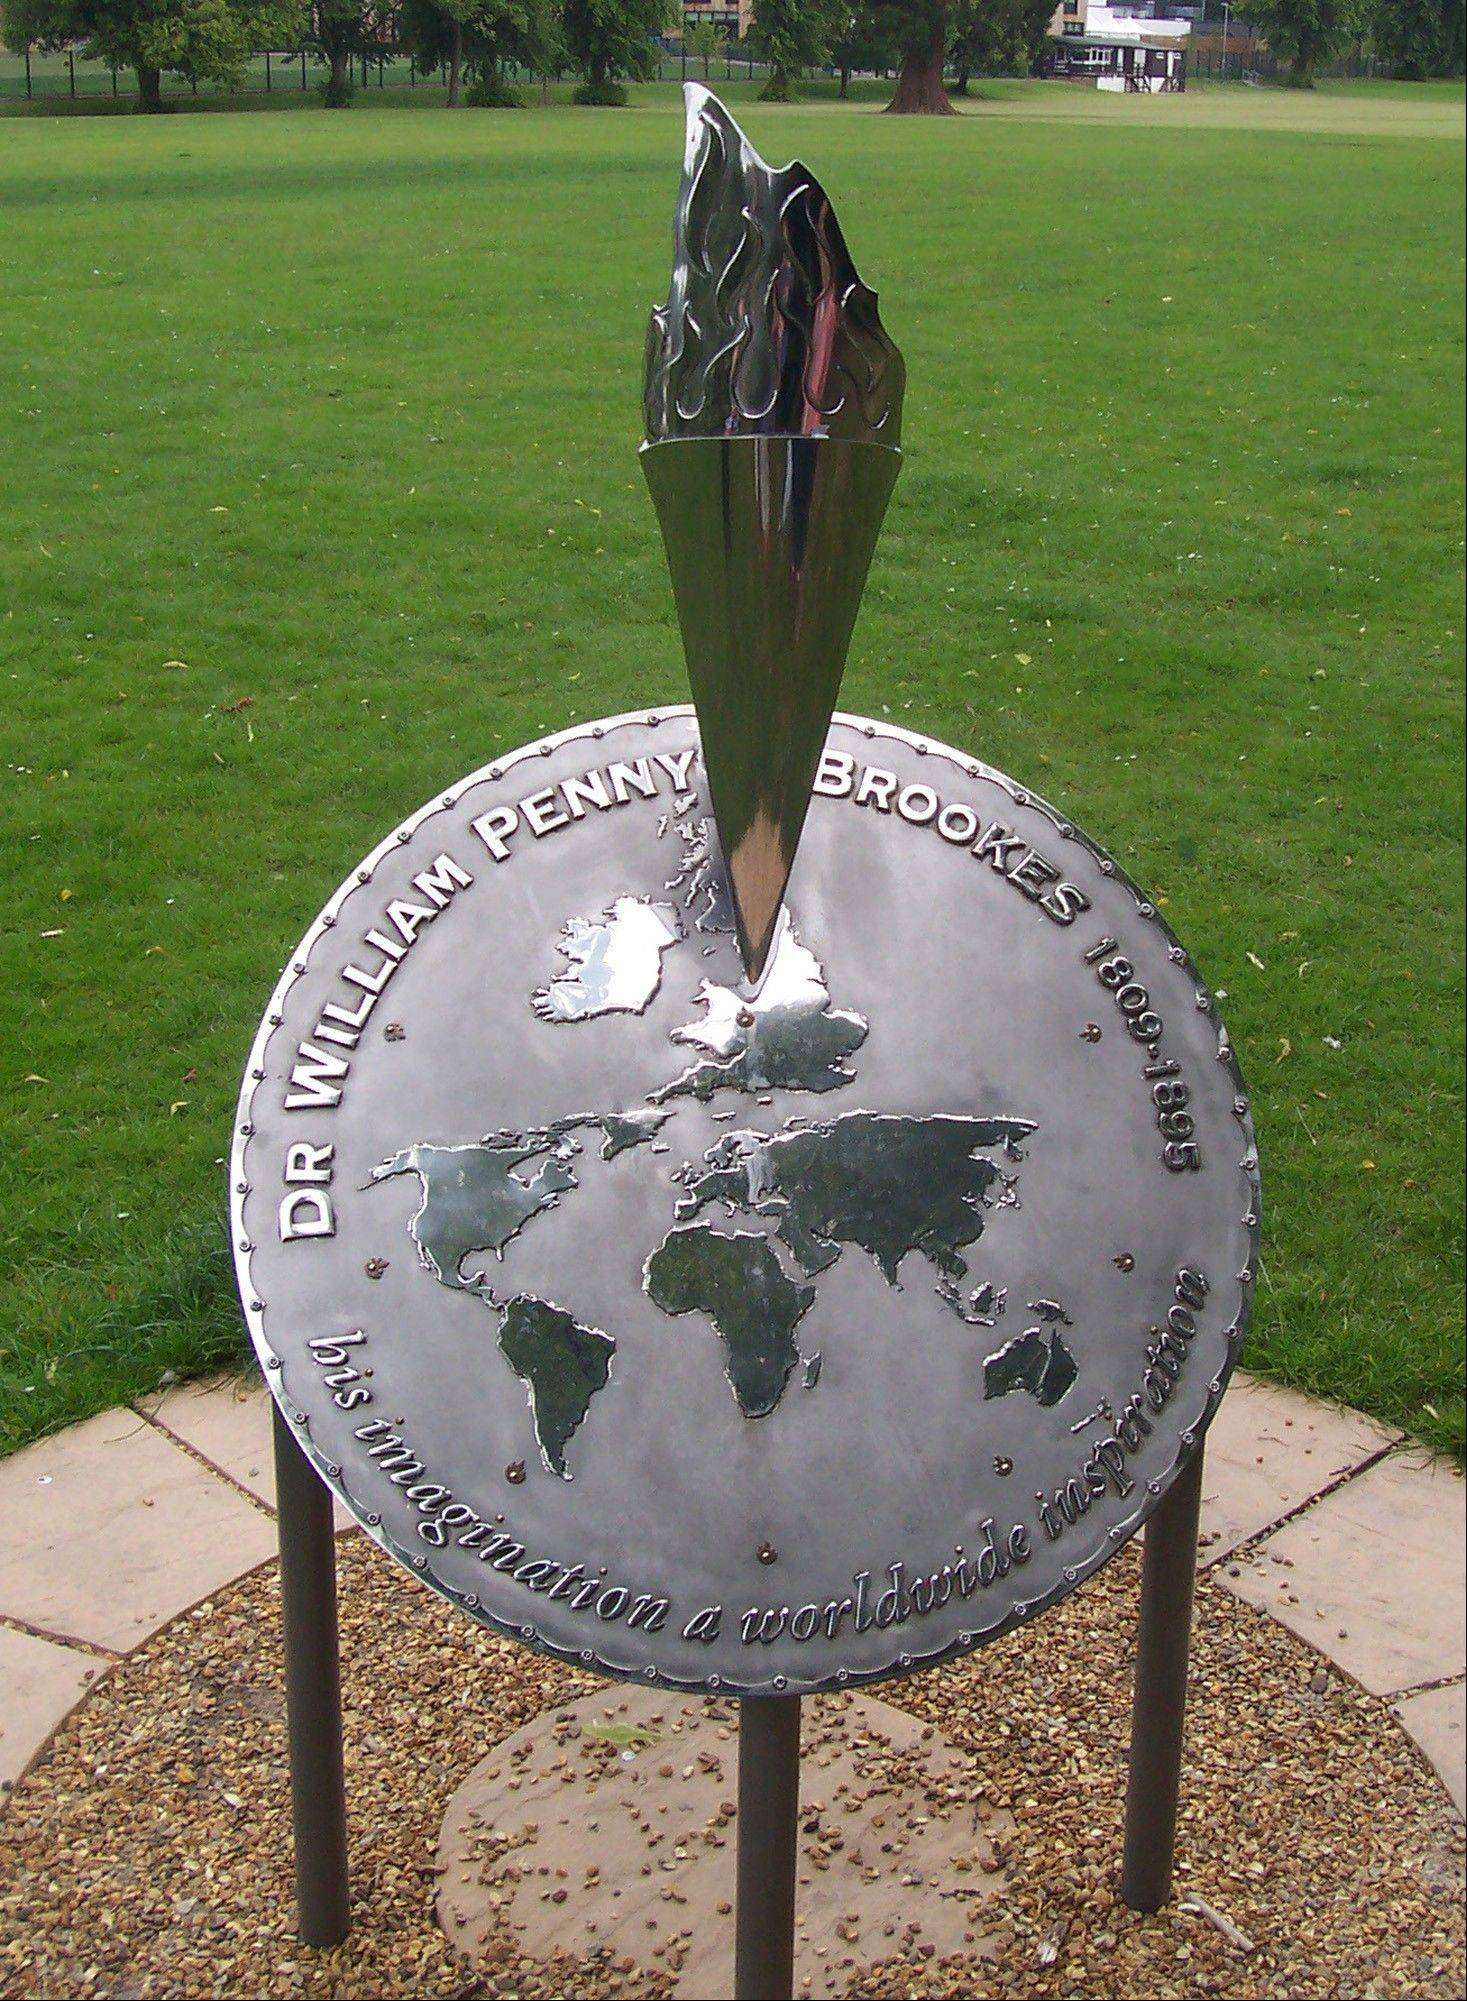 A commemorative torch sits at Linden Field in Much Wenlock, England, known as the birthplace of the modern Olympics. With the 2012 London Olympics just over a year away,Much Wenlock is celebrating early, and with good reason.